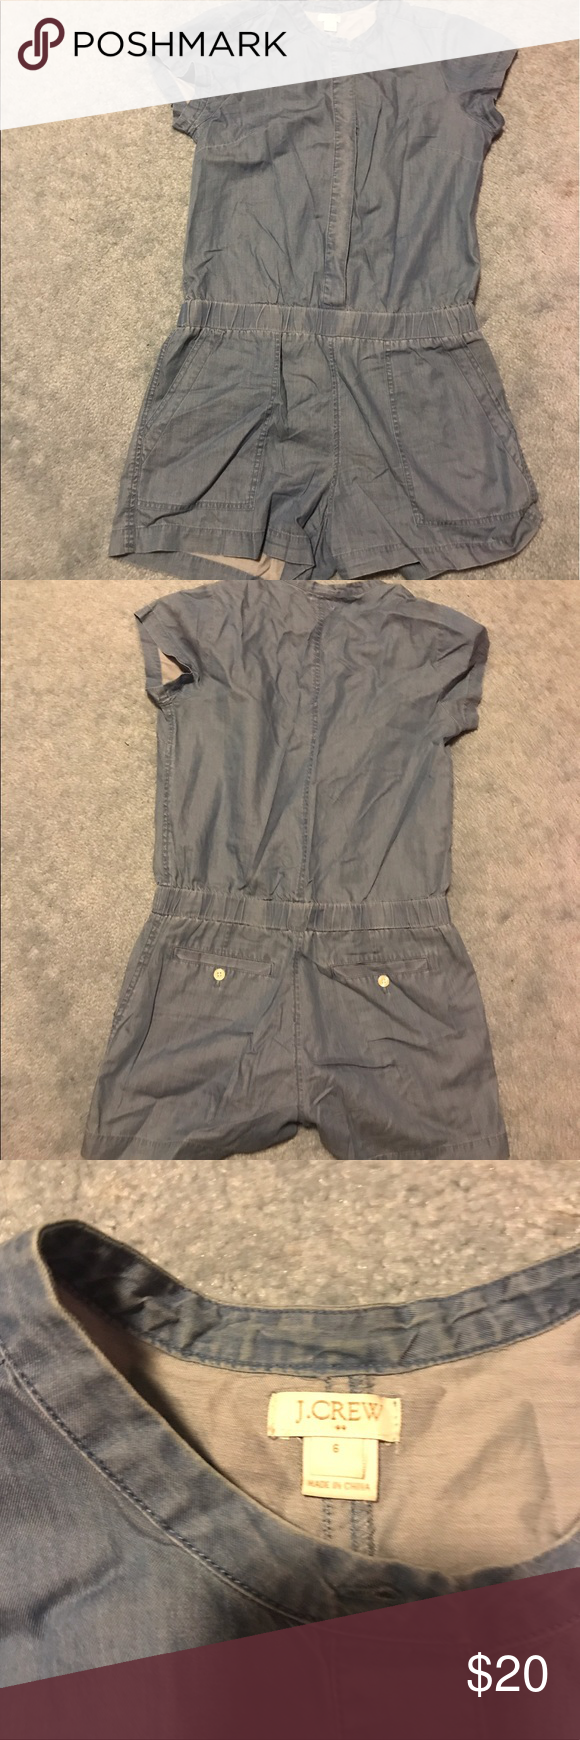 Chambray Romper Cute chambray romper, material is not heavy and it's buttoned up but it's hidden behind the fabric that covers it! Great summer/cruise outfit J. Crew Other #summercruiseoutfits